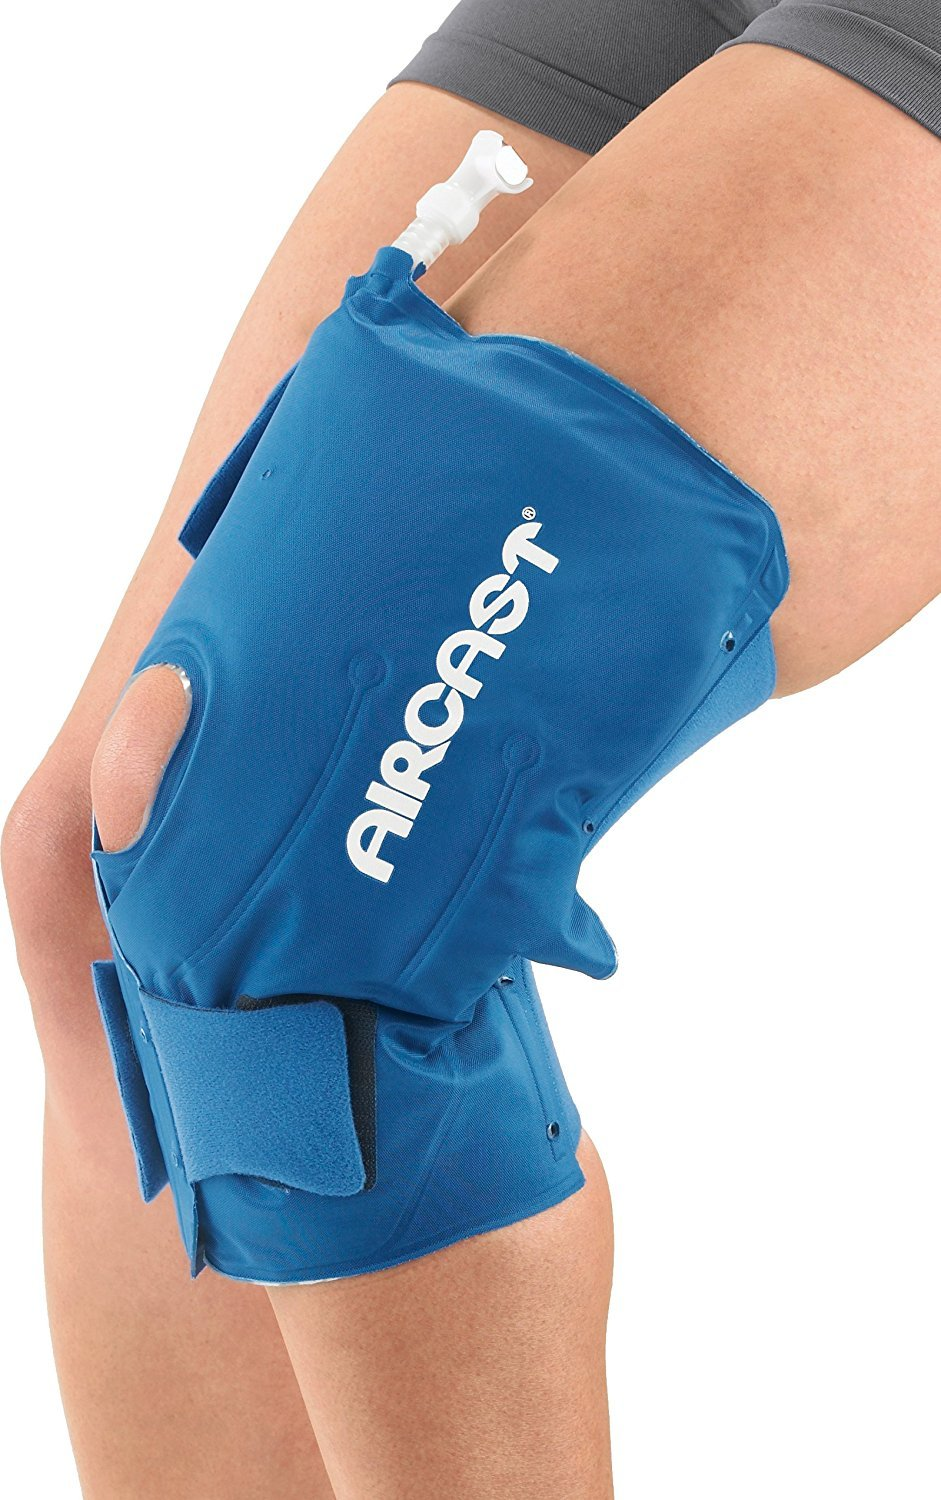 Aircast Cryo Cuff Knee Cold Therapy Machine Cooler for Cold Therapy Knee Solution - Blue - Large (20in - 31in) by Aircast